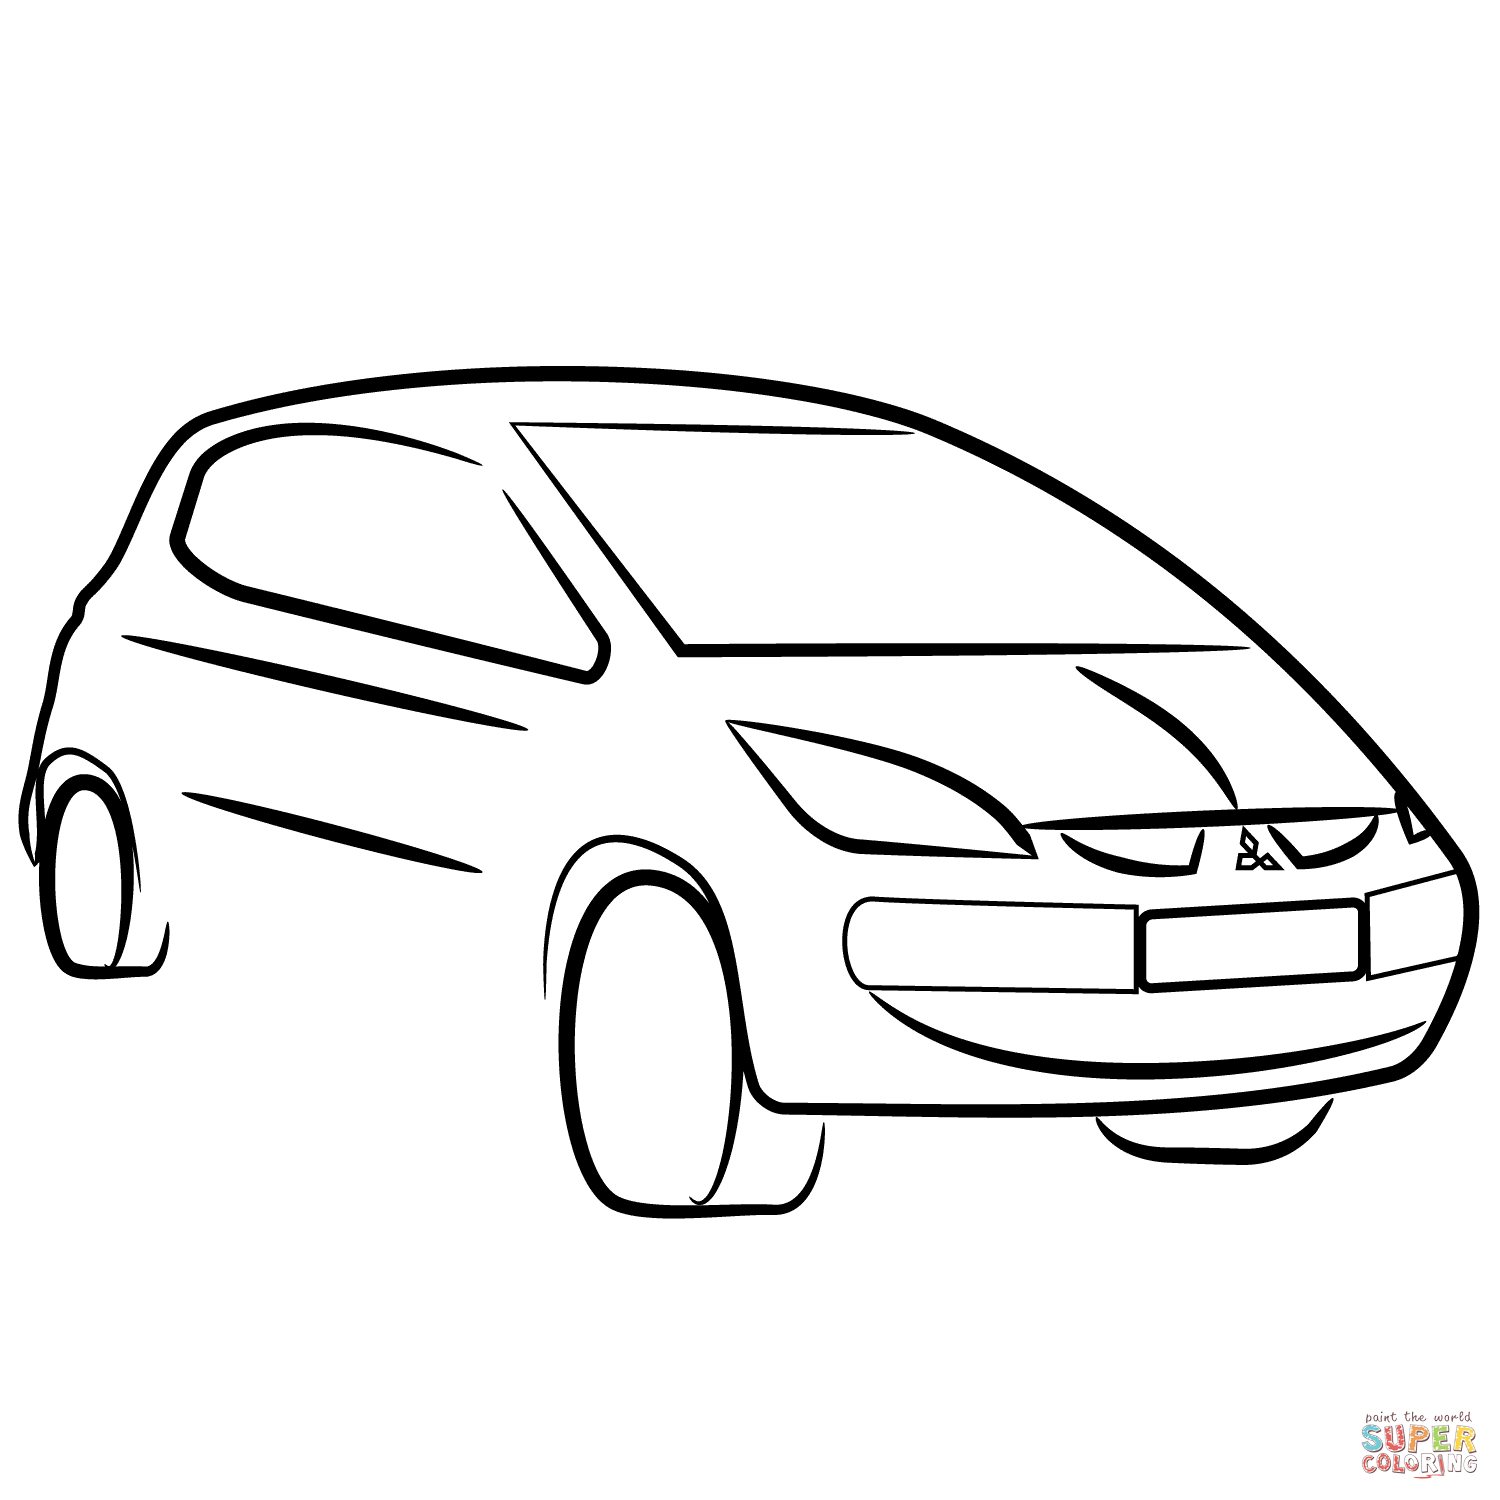 Mitsubishi Lancer Coloring Pages Coloring Pages